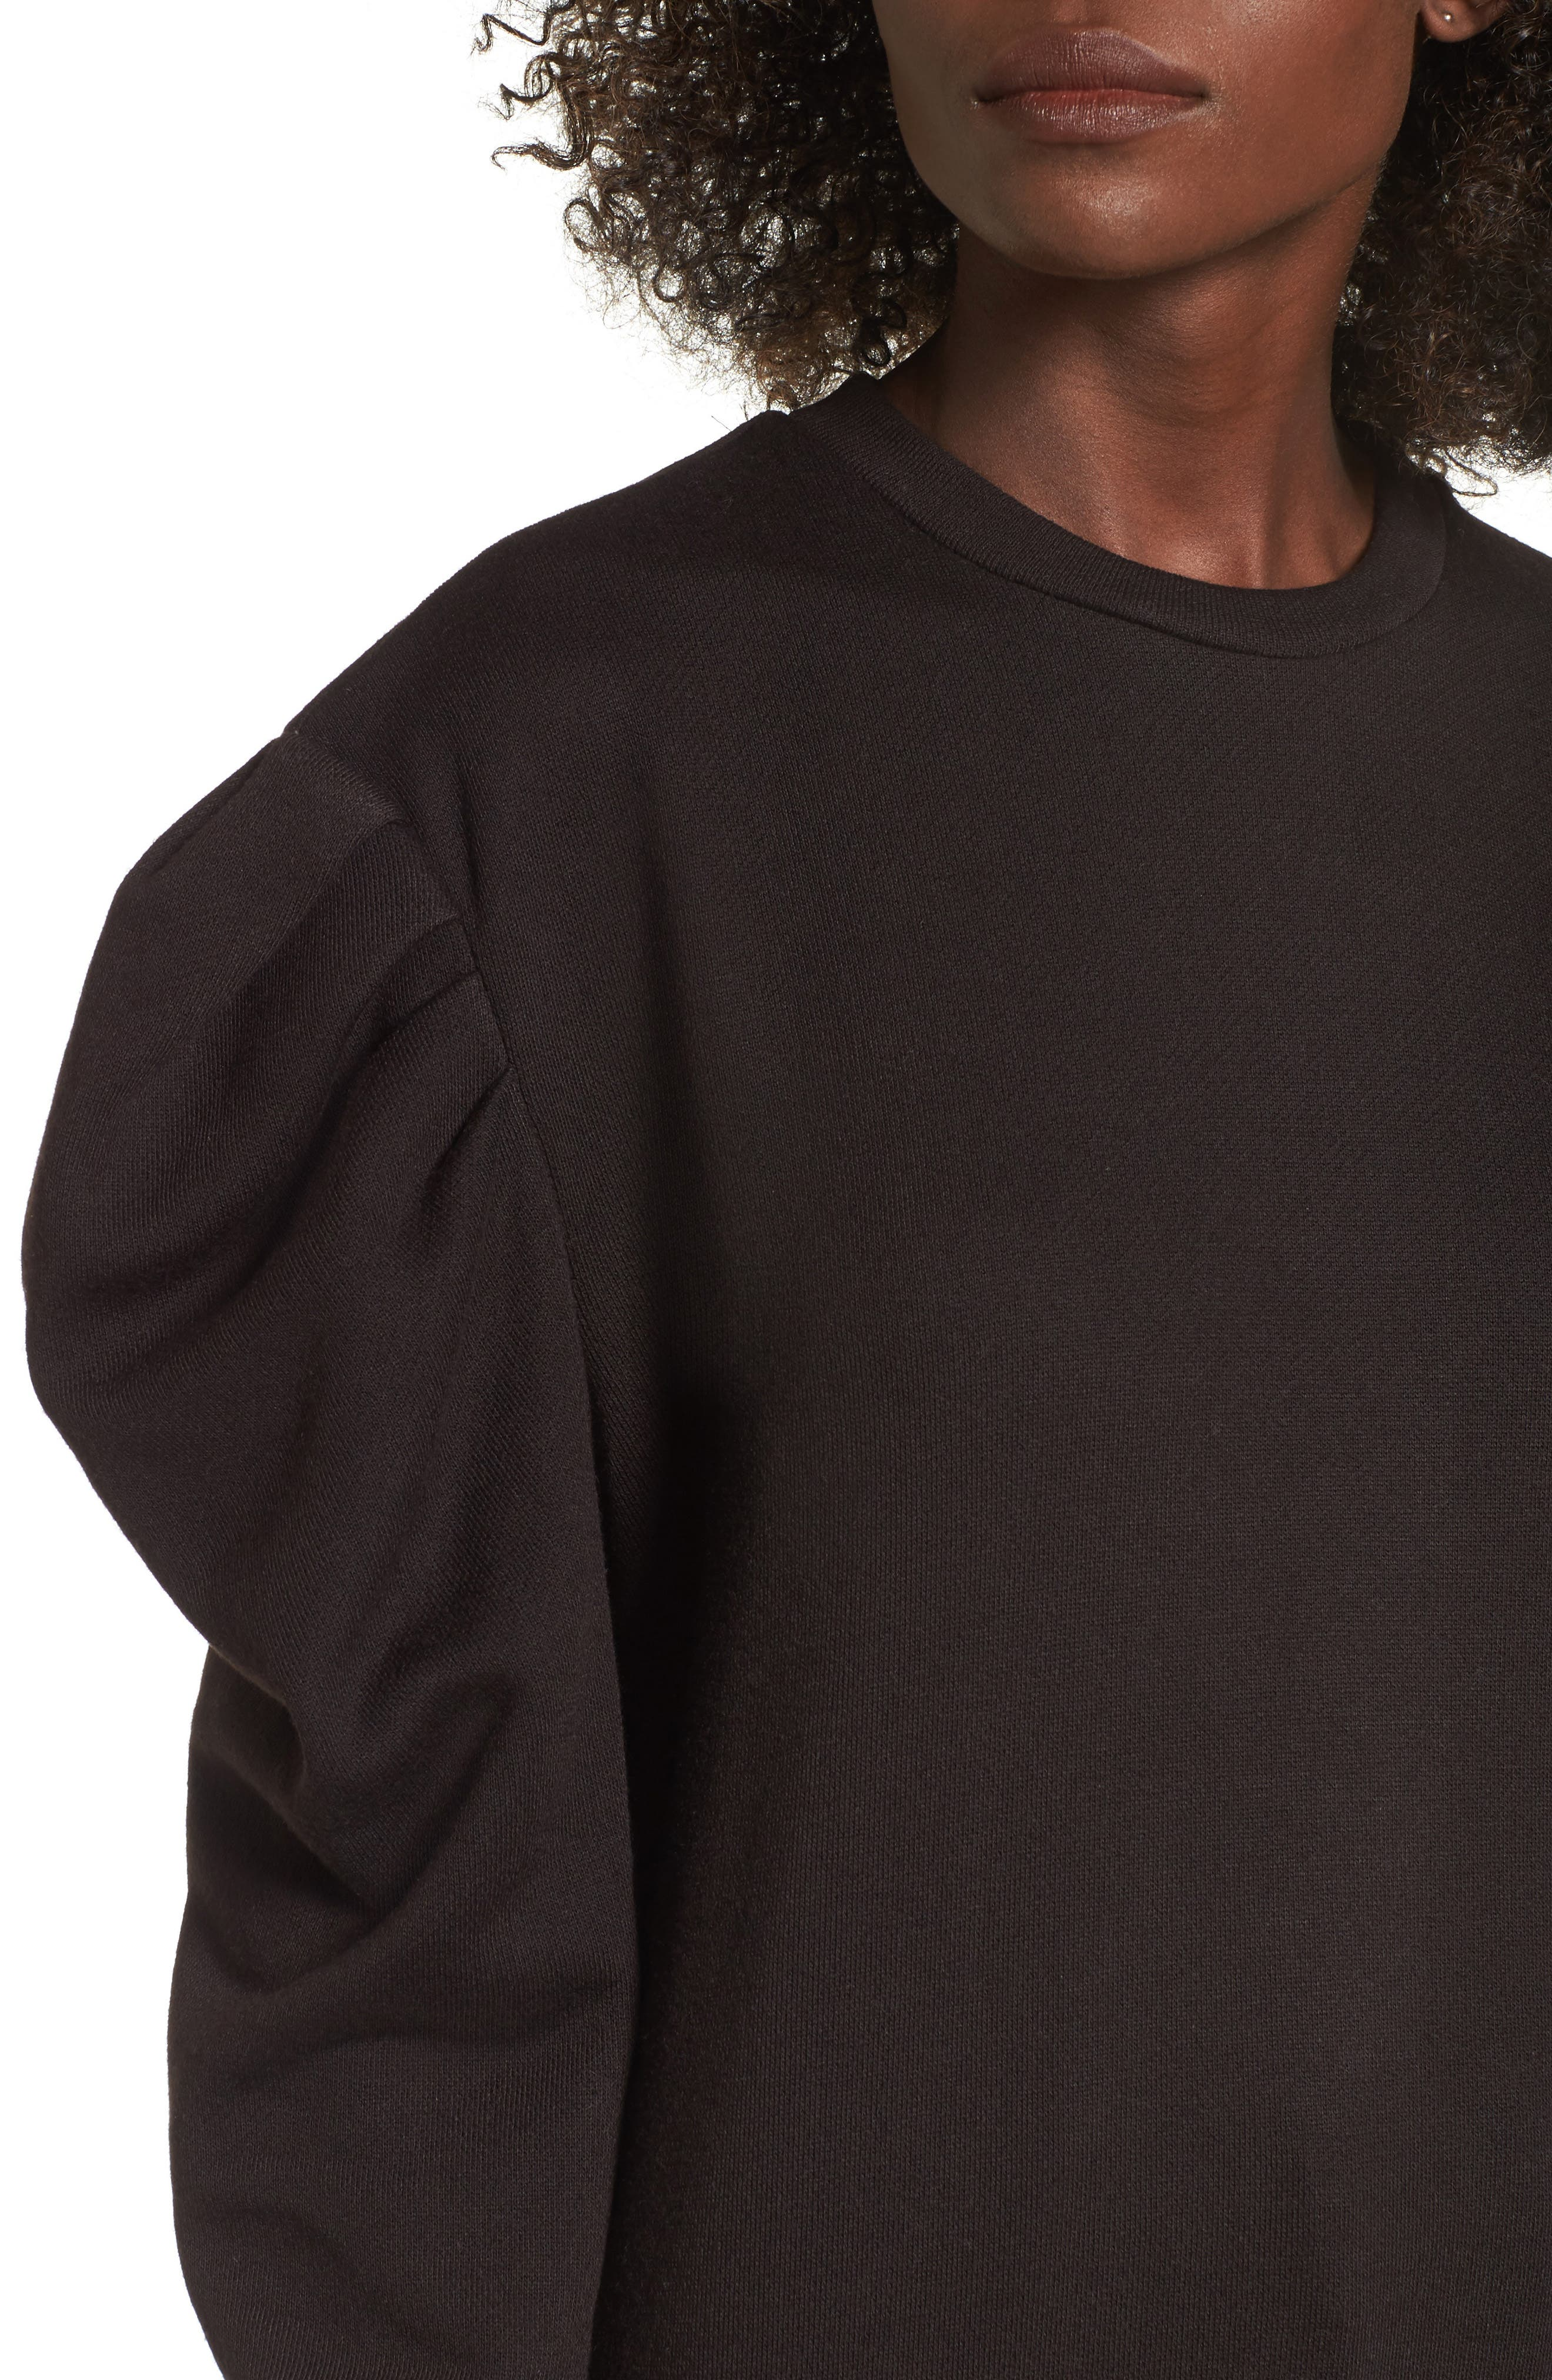 James Balloon Sleeve Sweatshirt,                             Alternate thumbnail 4, color,                             001